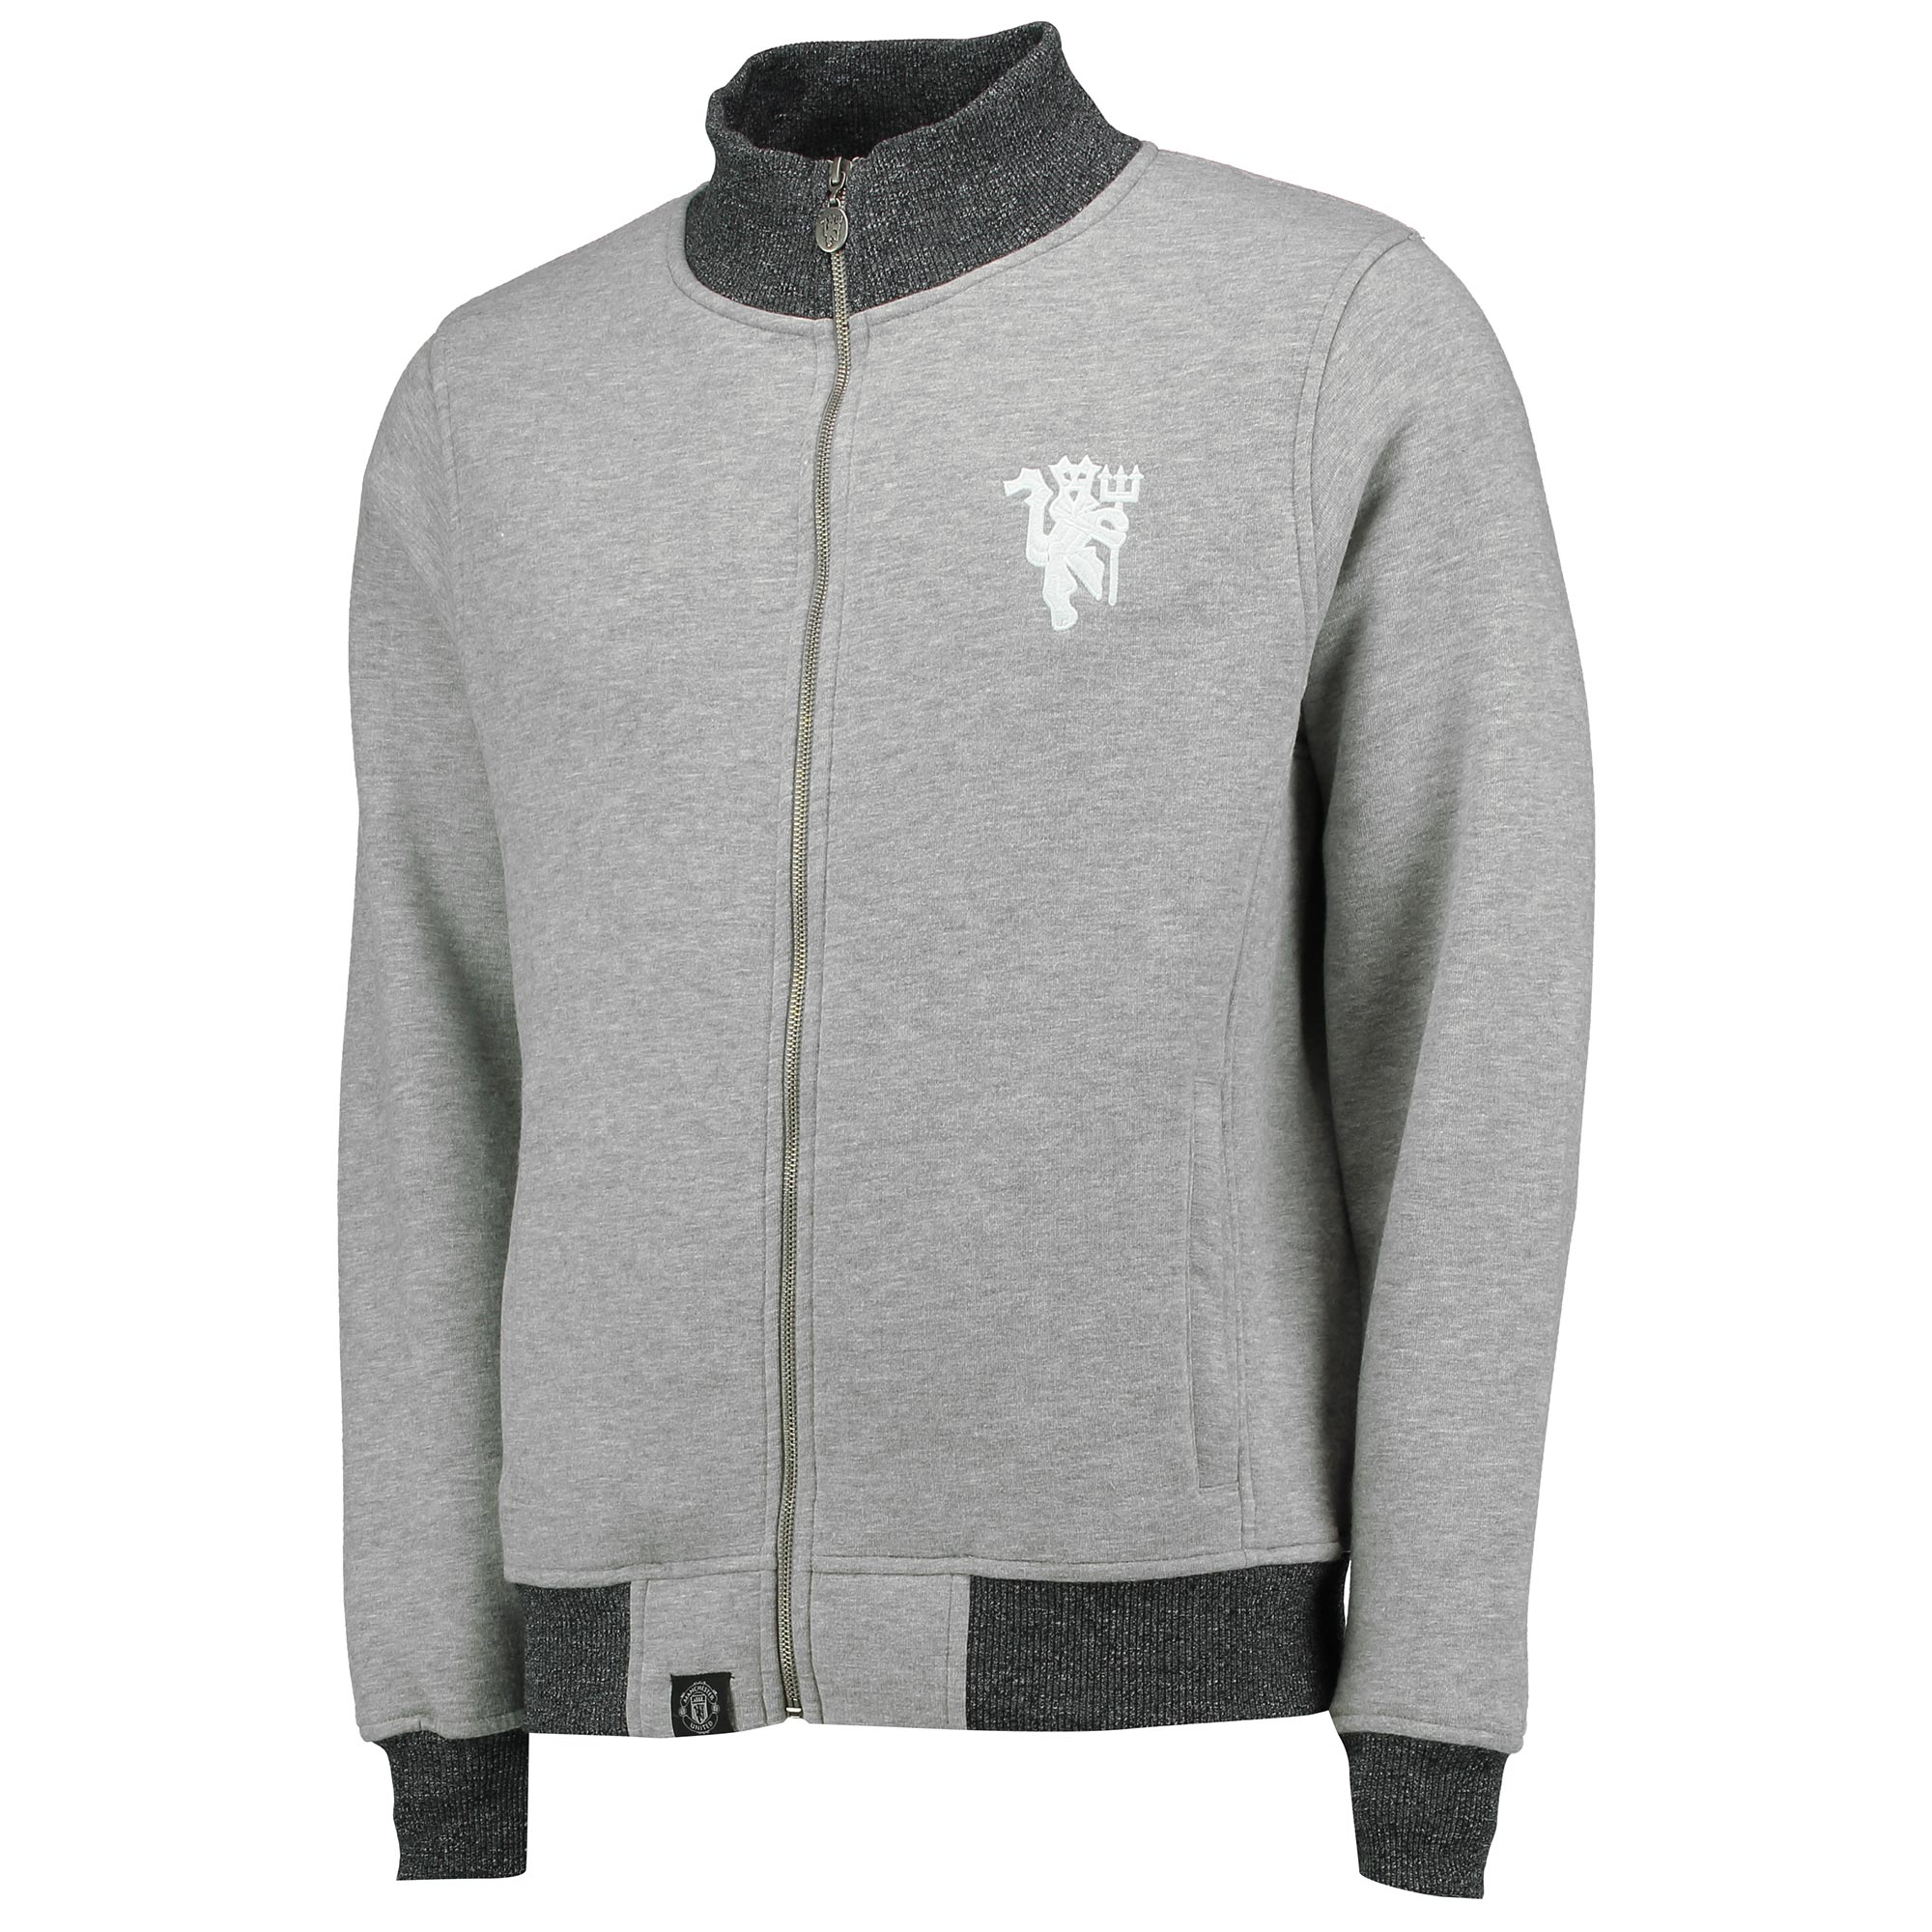 Manchester United Lifestyle Track Jacket - Grey - Mens